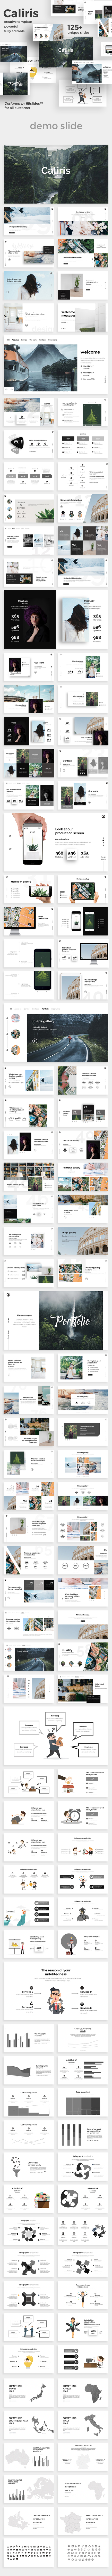 Caliris Creative Google Slide Template - Google Slides Presentation Templates